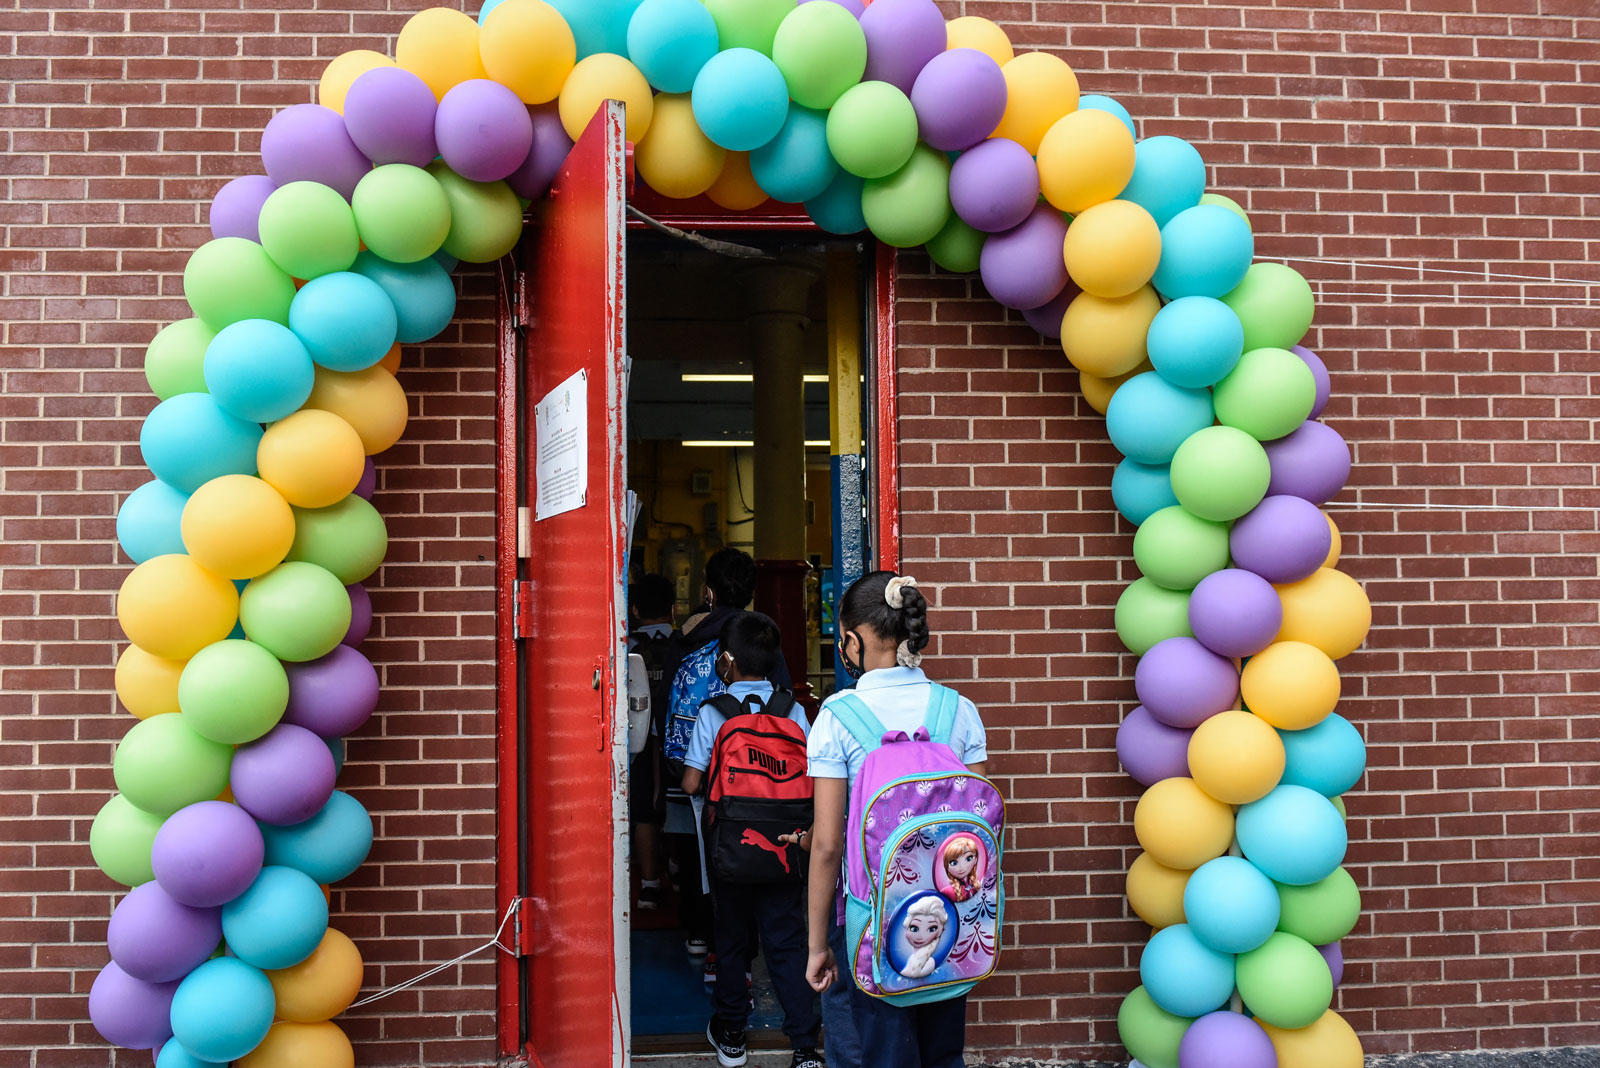 Students arrive on the first day of classes at a public school in the Bronx, New York on Sept. 13.